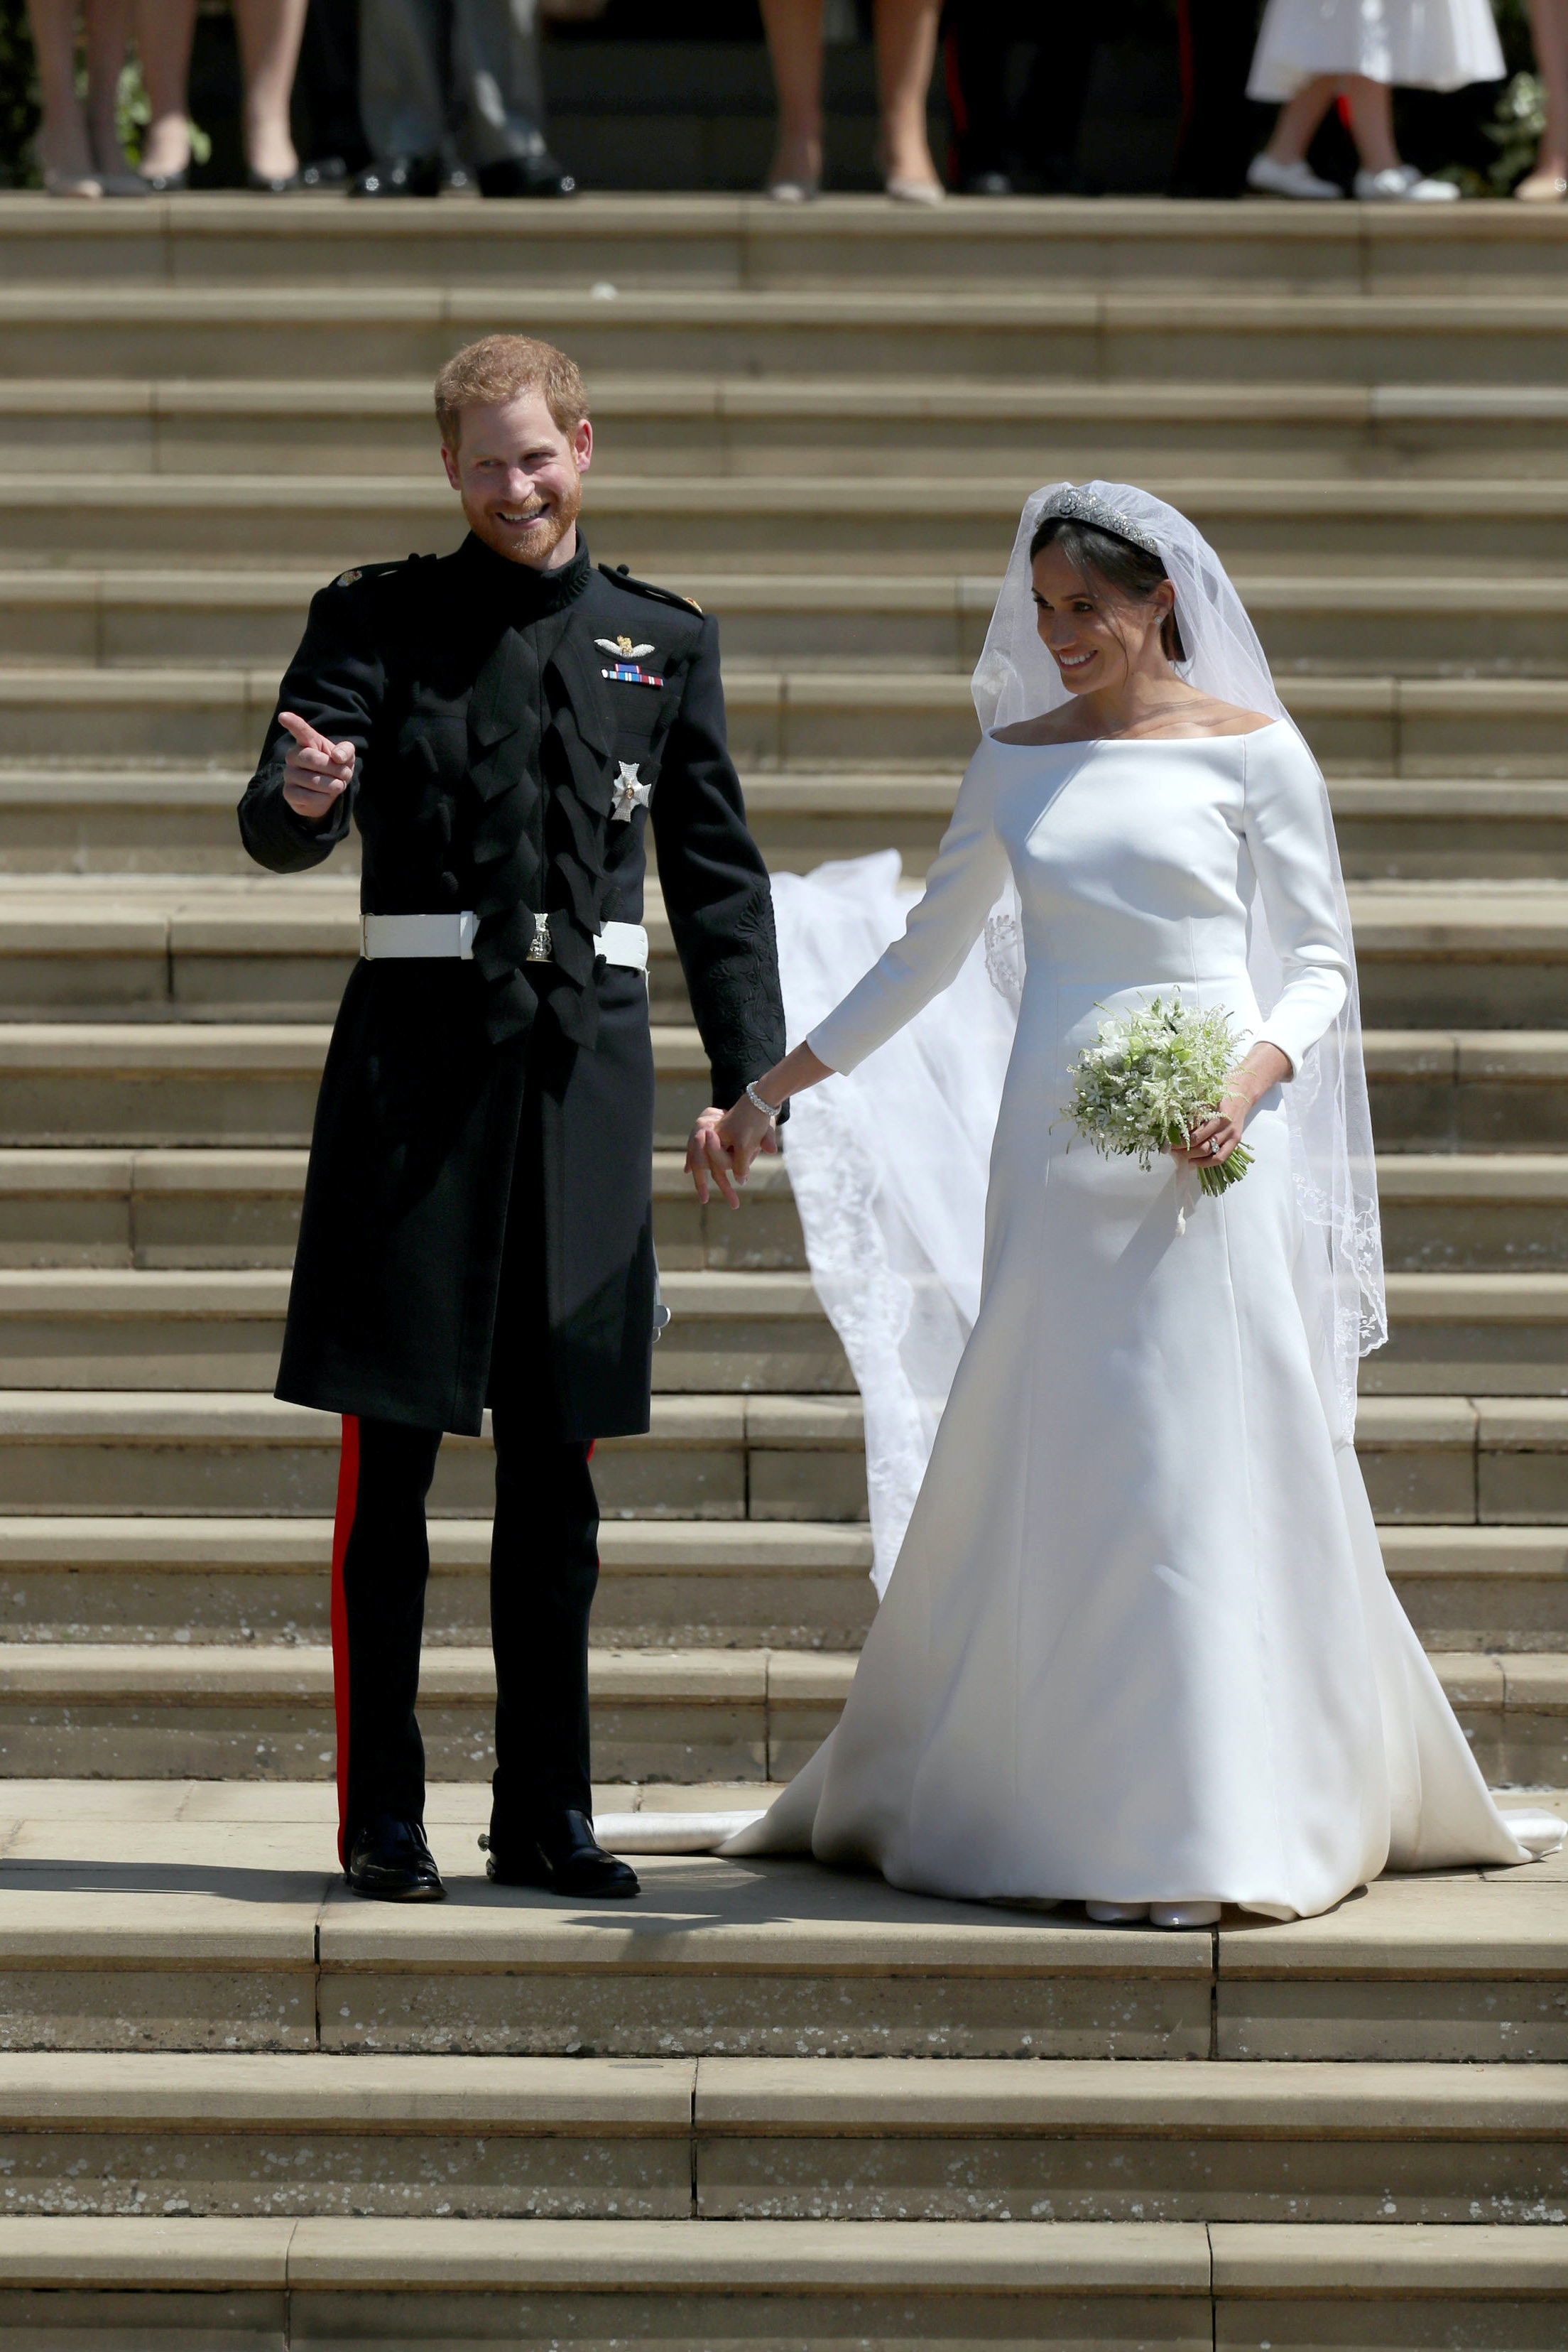 Meghan Markle S Wedding Dress Vs Kate Middleton The Difference Is In Details